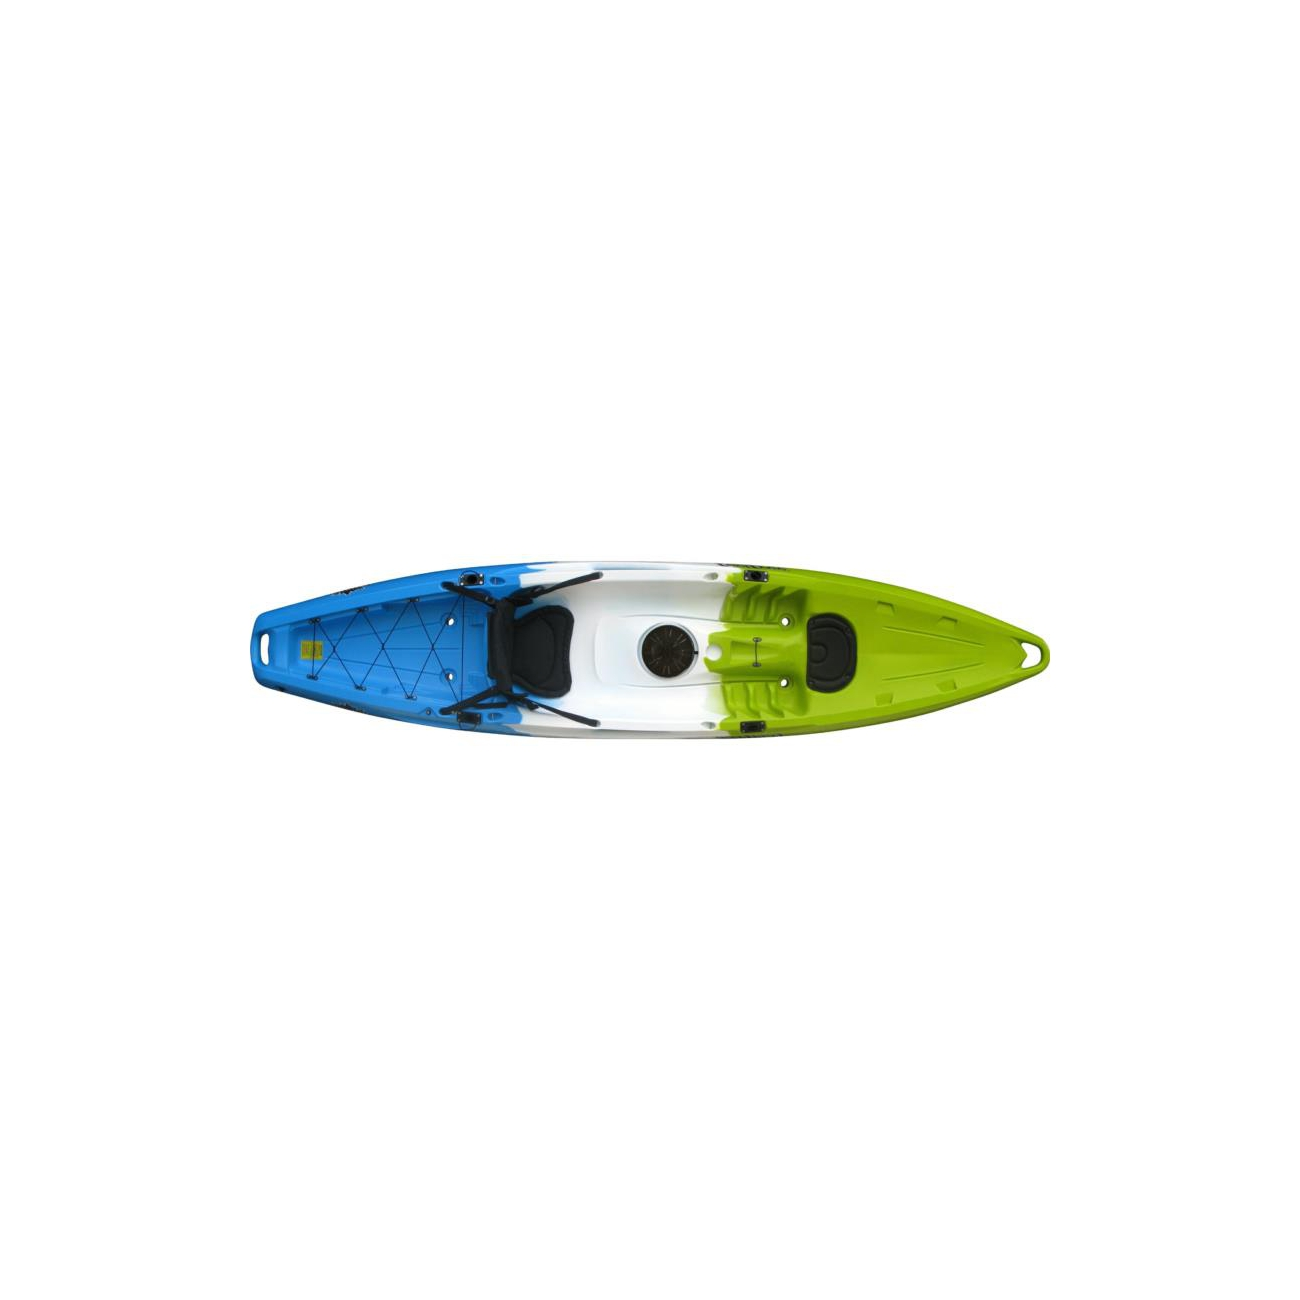 https://feelfreekayak.eu/613-small_default/juntos-ice-cool-light-blue-white-teal.jpg